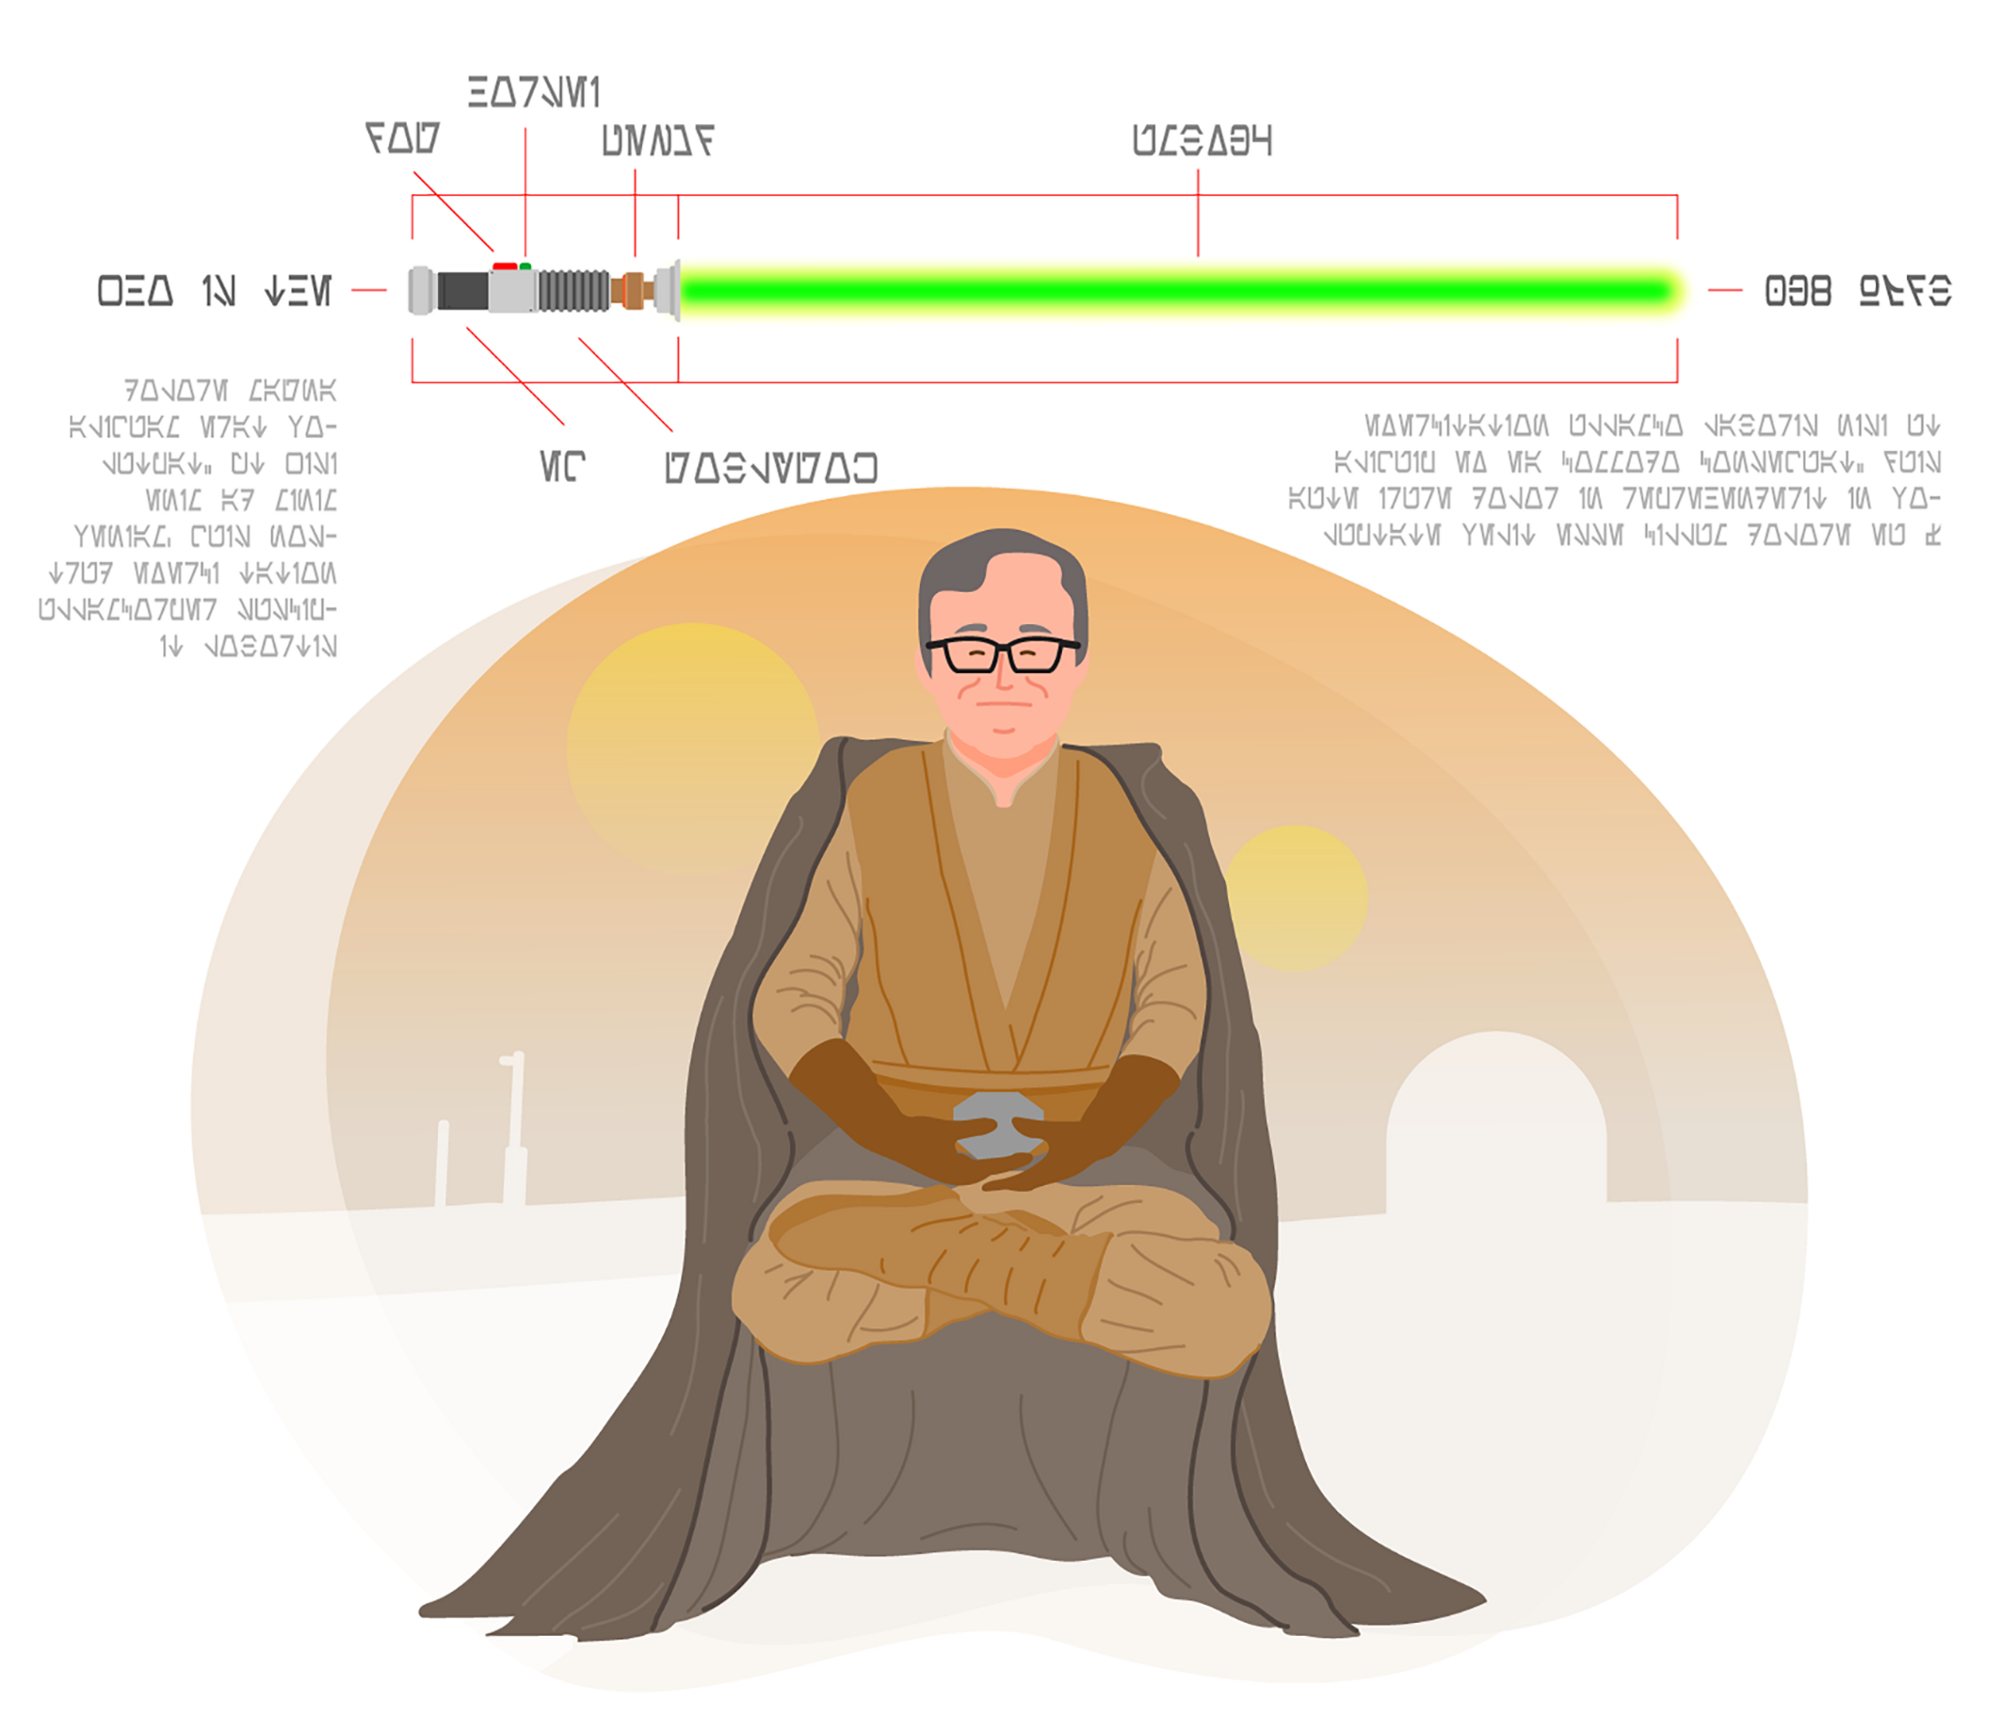 An illustration of Gordon Baty (our UX Director) dressed as a Jedi. Art by Steve Hall.